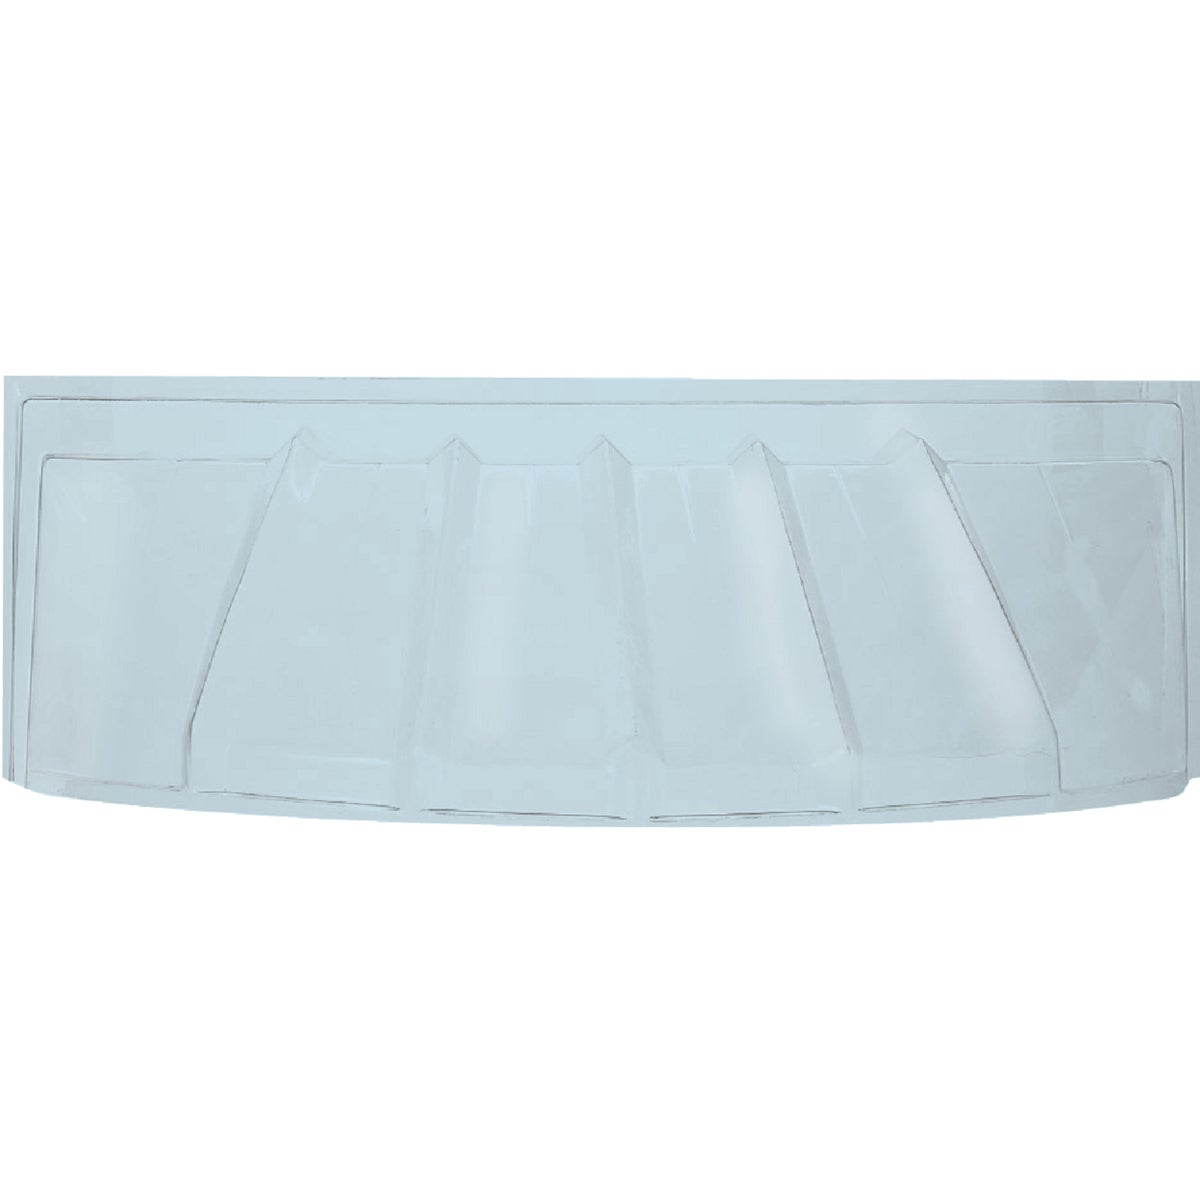 42X17 WINDOW WELL COVER - W4217-DI by Maccourt Products